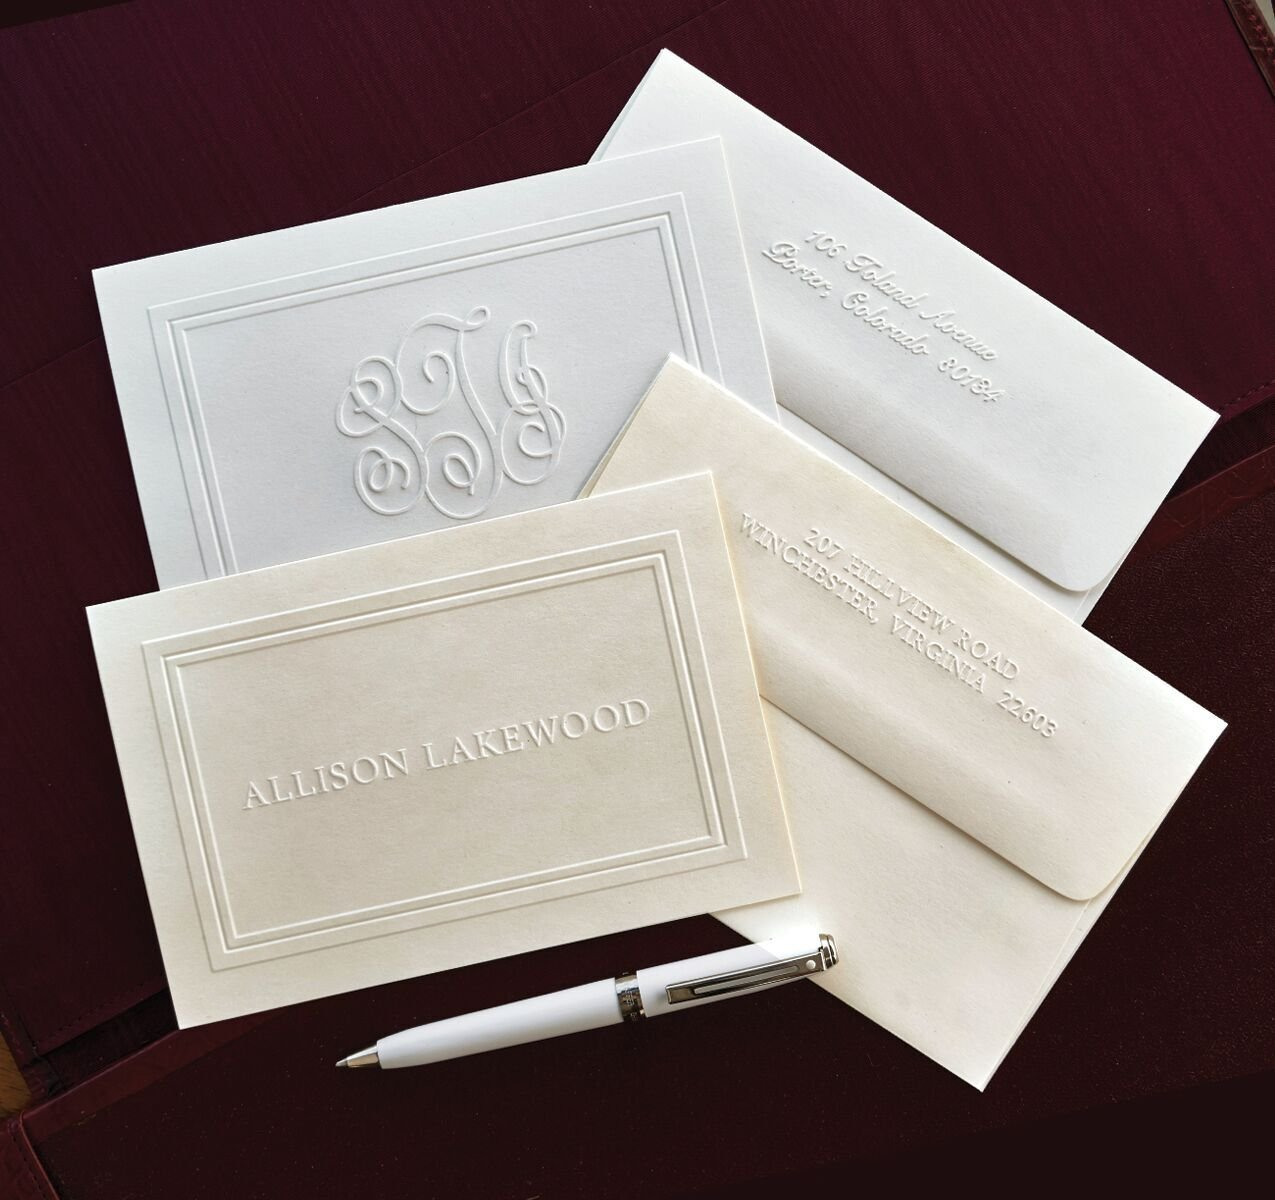 The Ultimate Embossed Double Border Notes - Personalized Embossed Notes -3190 by American Stationery